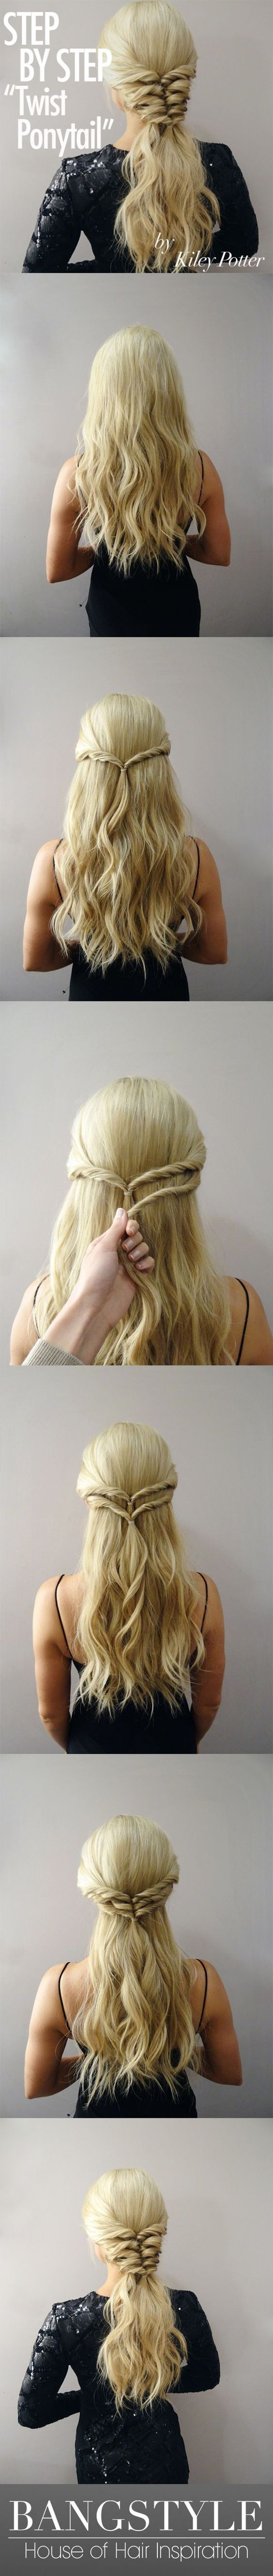 Pin by helena on lit throne of glass pinterest updo style